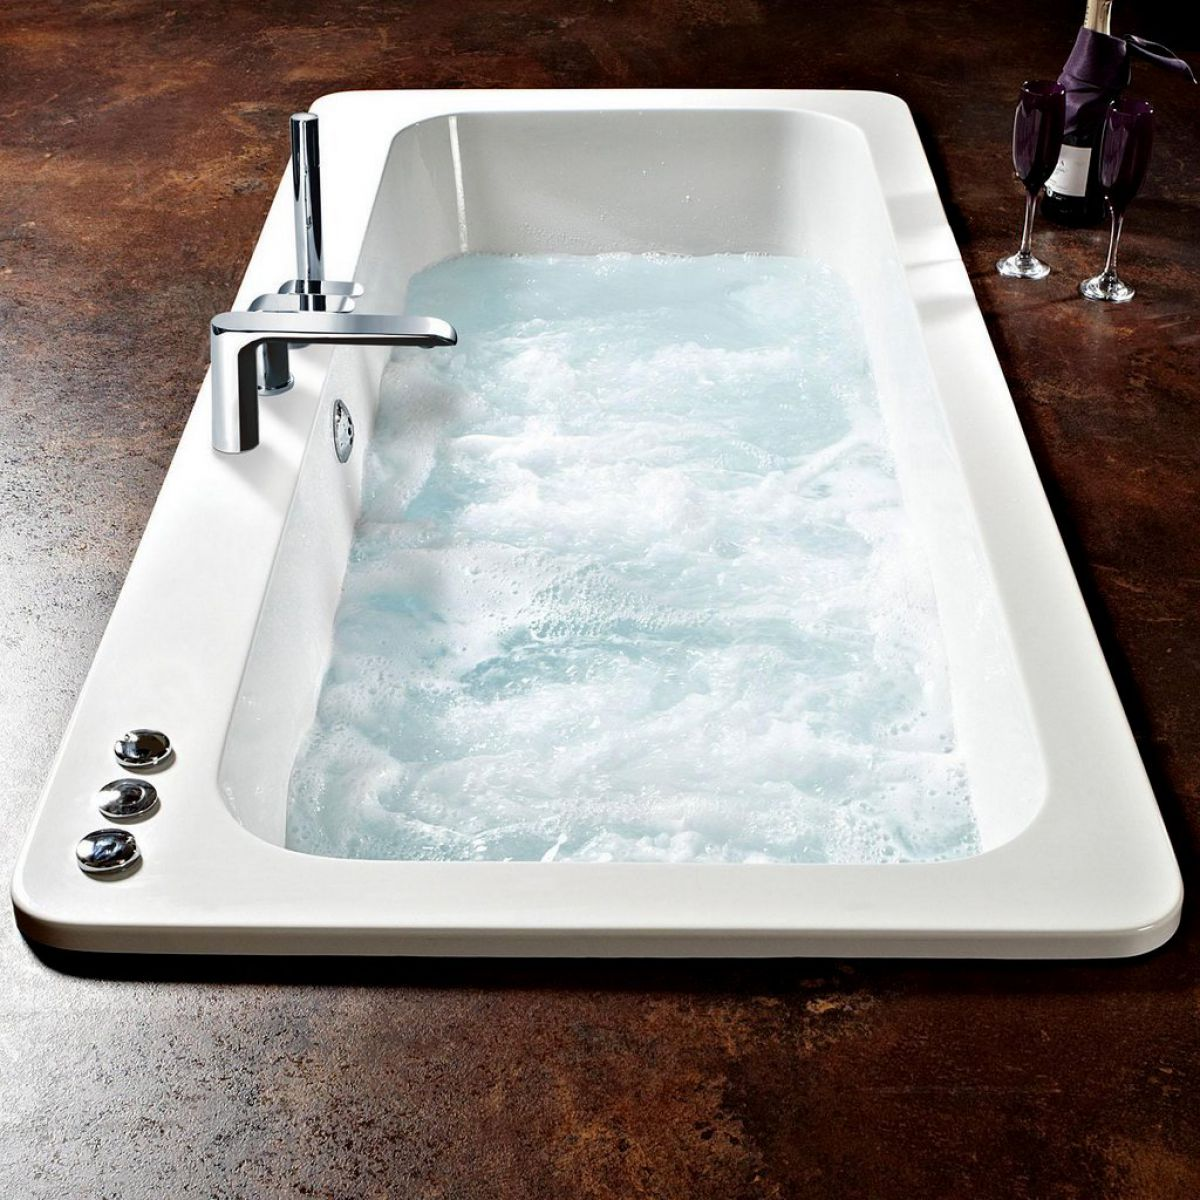 image example of a whirlpool bath